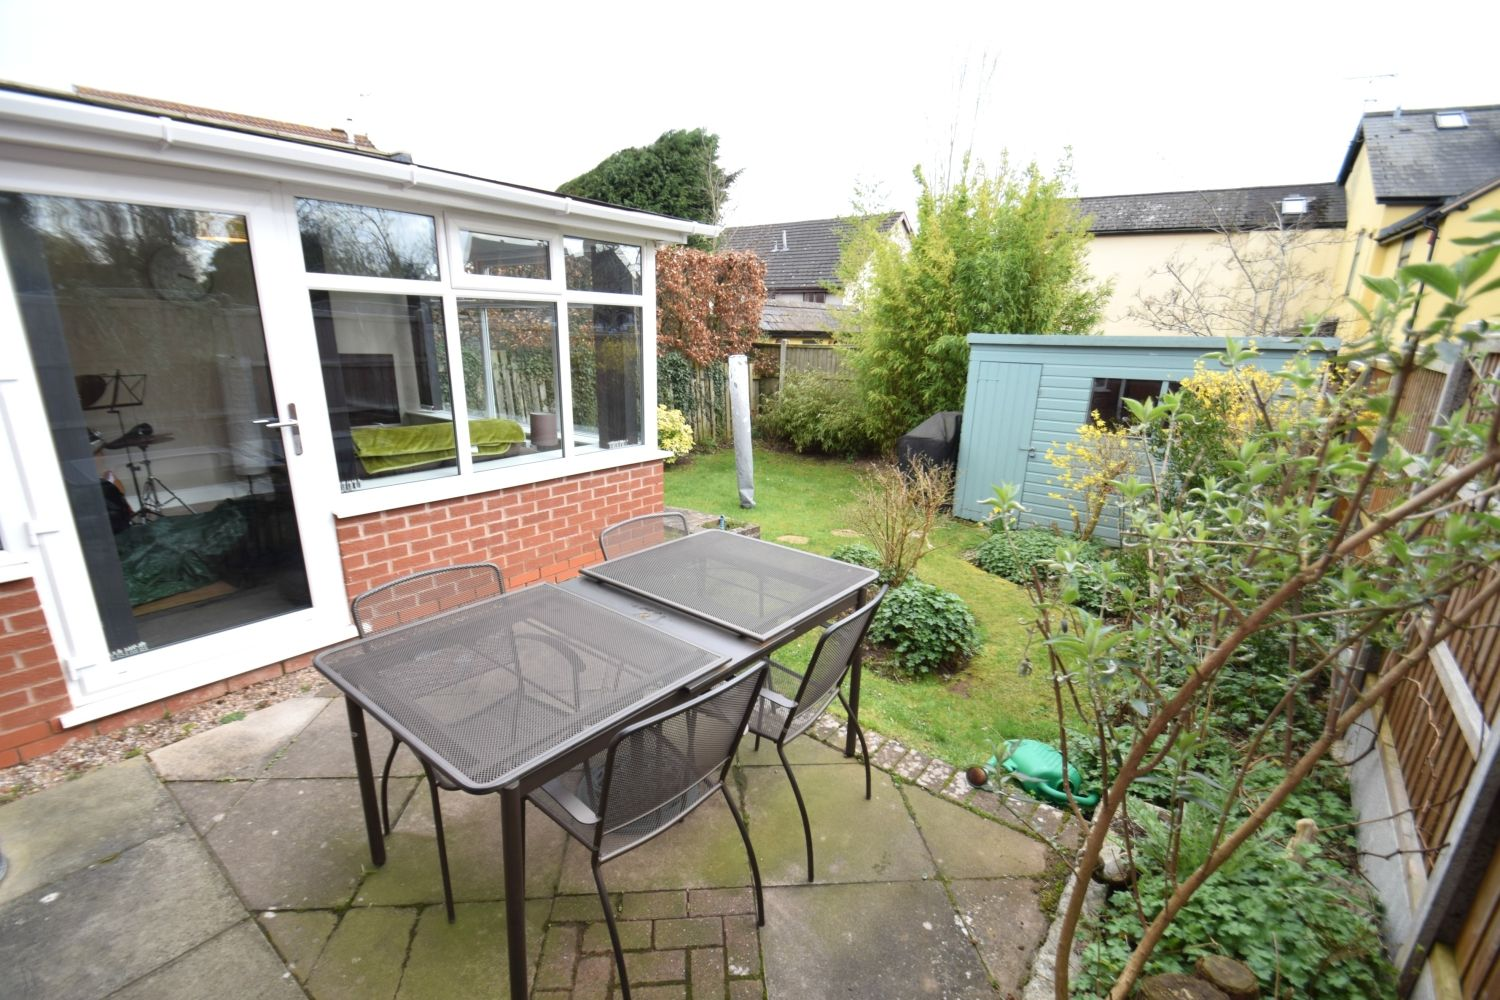 3 bed detached for sale in Foxes Close, Blackwell, B60  - Property Image 21